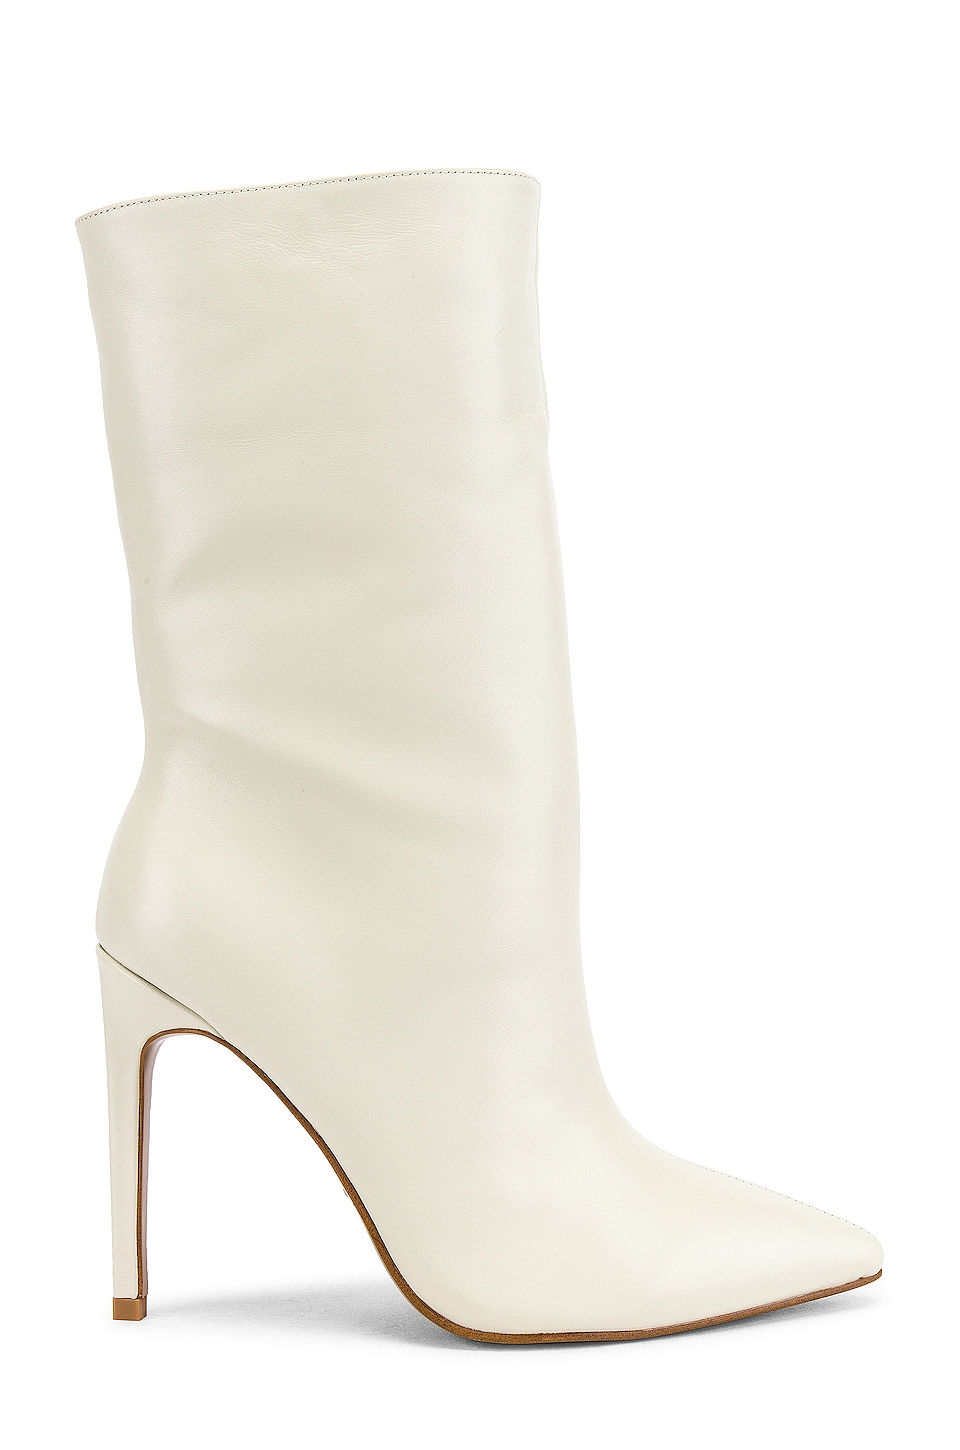 RAYE Studio Boot in White